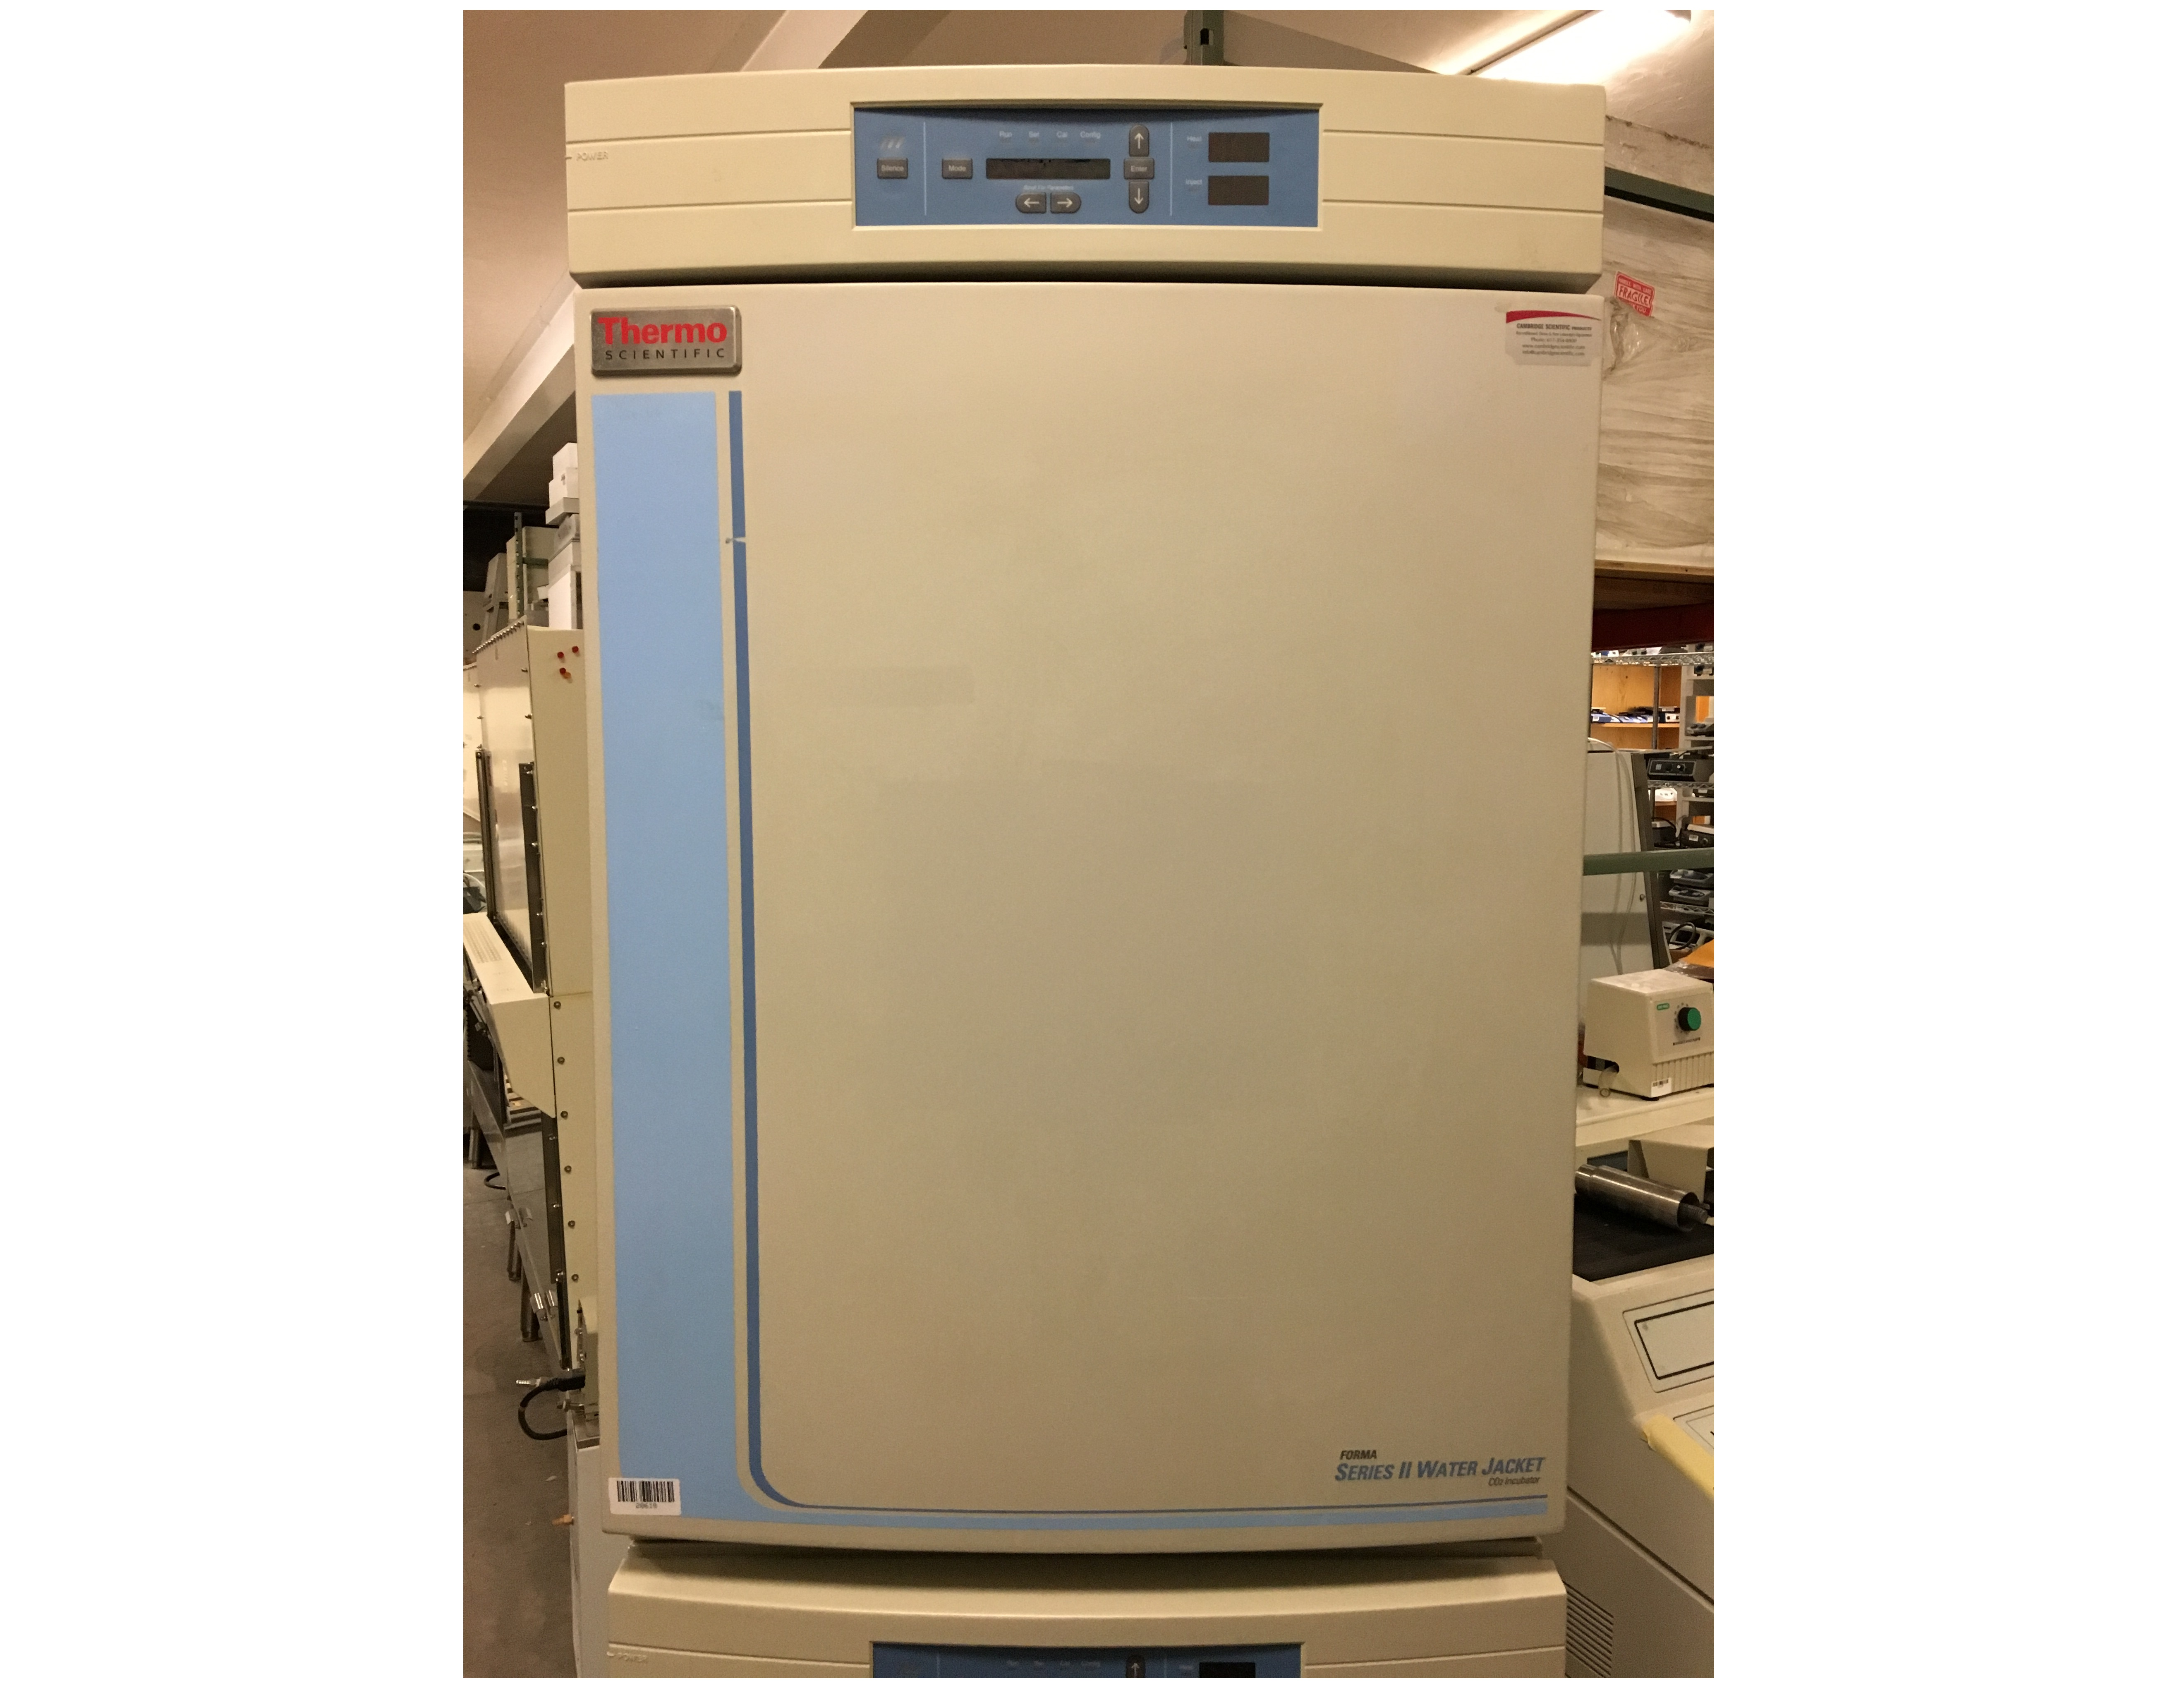 Thermo Scientific 3110 CO2 Water Jacketed Incubator